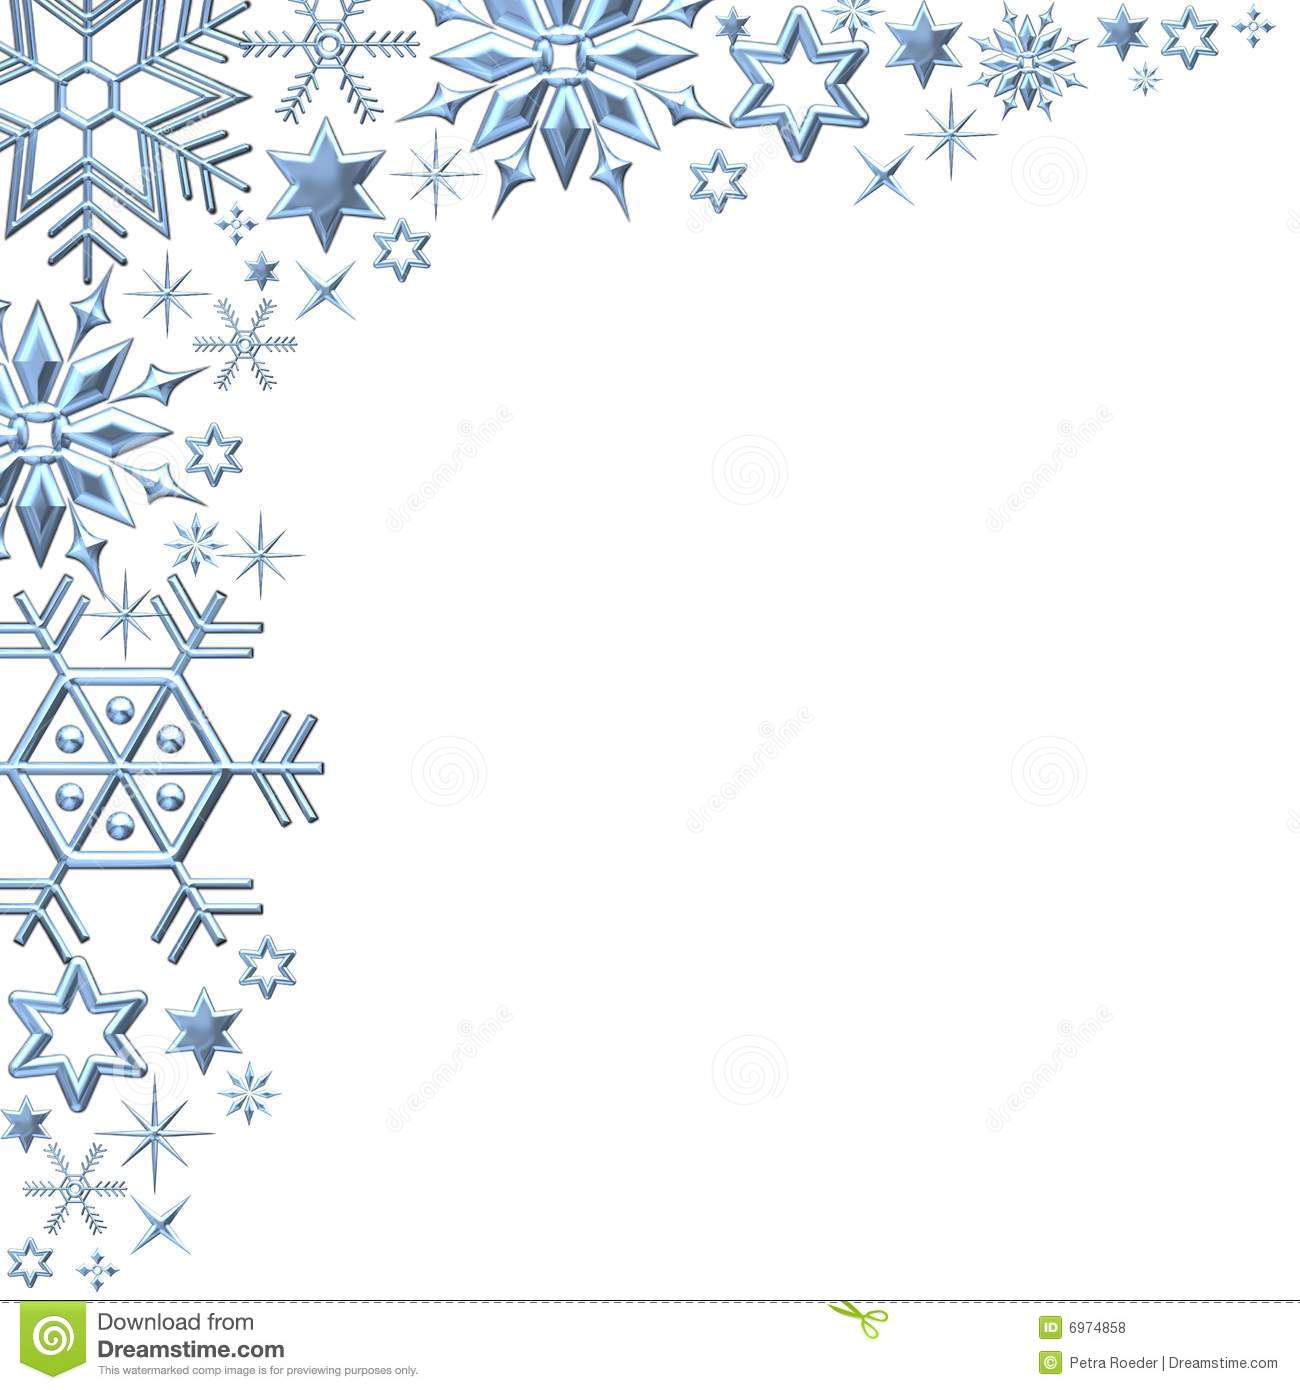 984838 further christmas hand drawn sketchy doodles 17257069 furthermore snowflakes border white 6974858 furthermore  besides RiAkB96iL moreover scarecrow cute 2 line art in addition  furthermore maple and oak leaves coloring page furthermore 10bd730340771b052b46b7990e780d32 besides  furthermore d5072. on borders fall leaves coloring pages